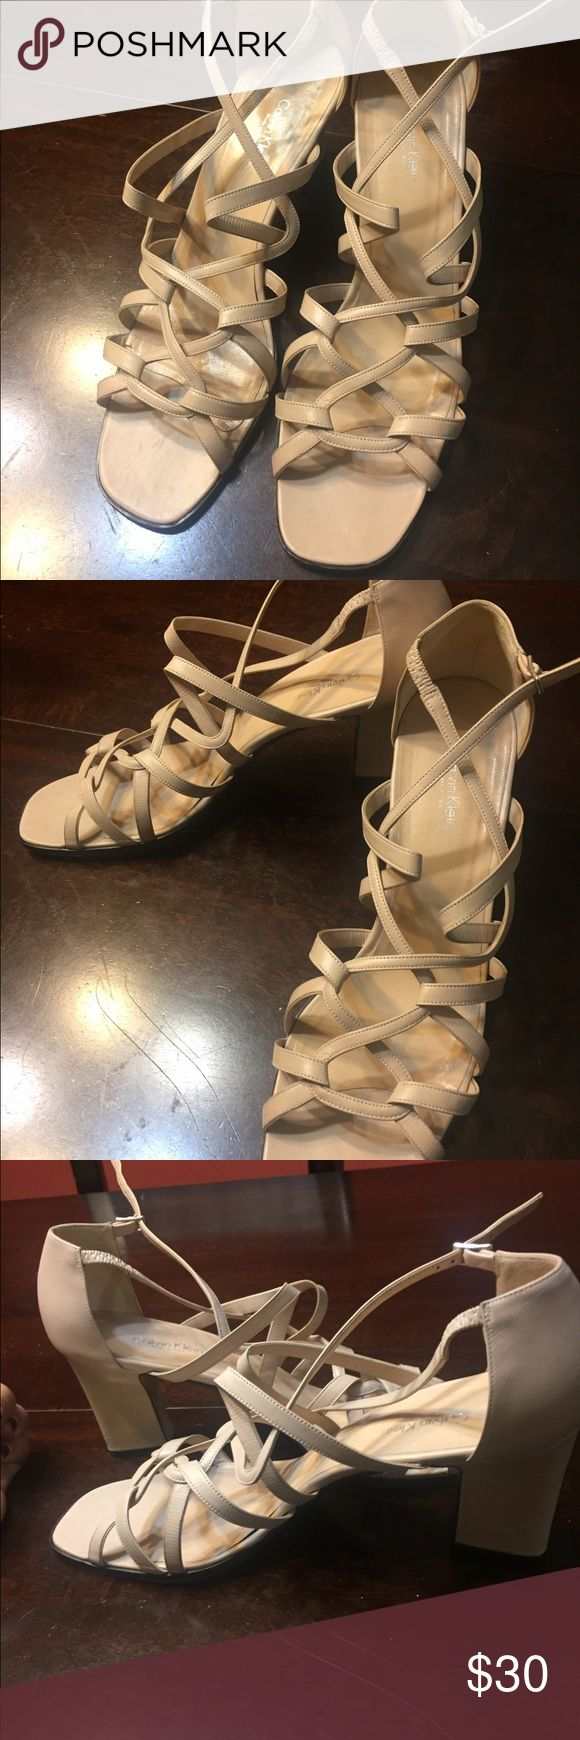 Calvin Klein nude strappy chunky  3 inch heels 👠 Up for sale are a pair of Nude Calvin Klein strappy open toed heels. Heel height is 3 inches. This is in great condition. Perfect for your spring wardrobe! Calvin Klein Shoes Heels